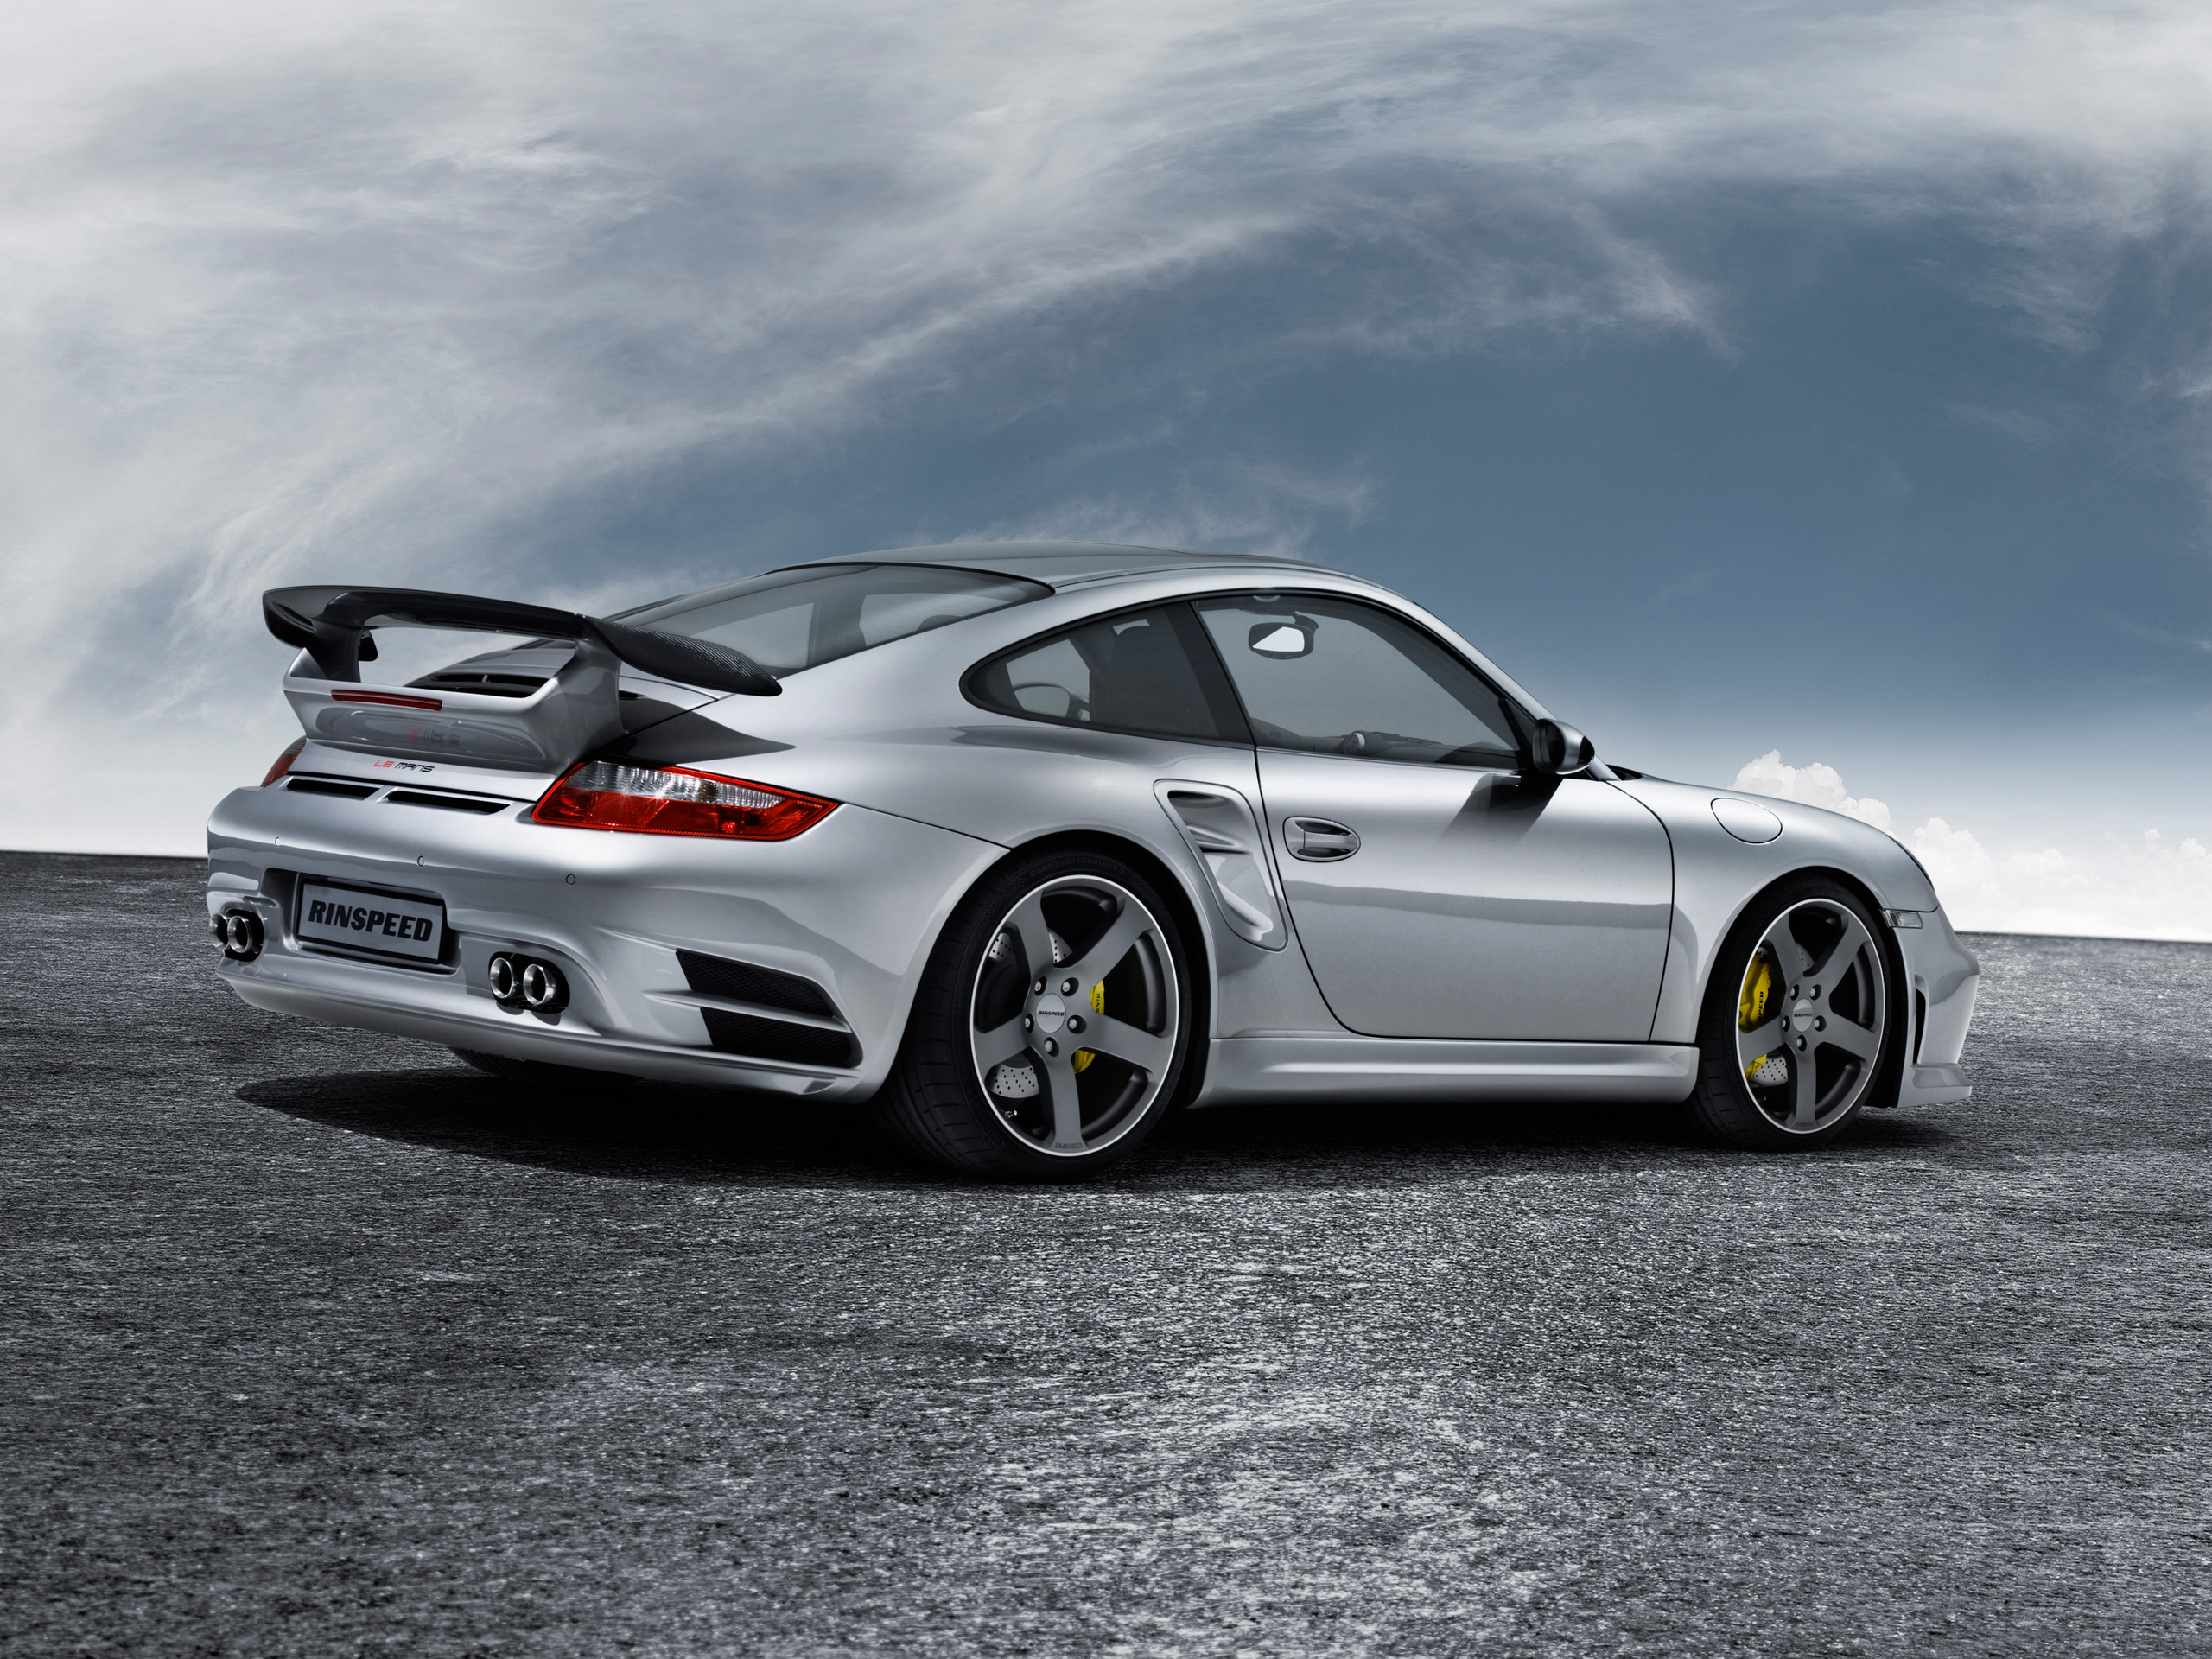 porsche images porsche 997 turbo by rinspeed hd wallpaper. Black Bedroom Furniture Sets. Home Design Ideas